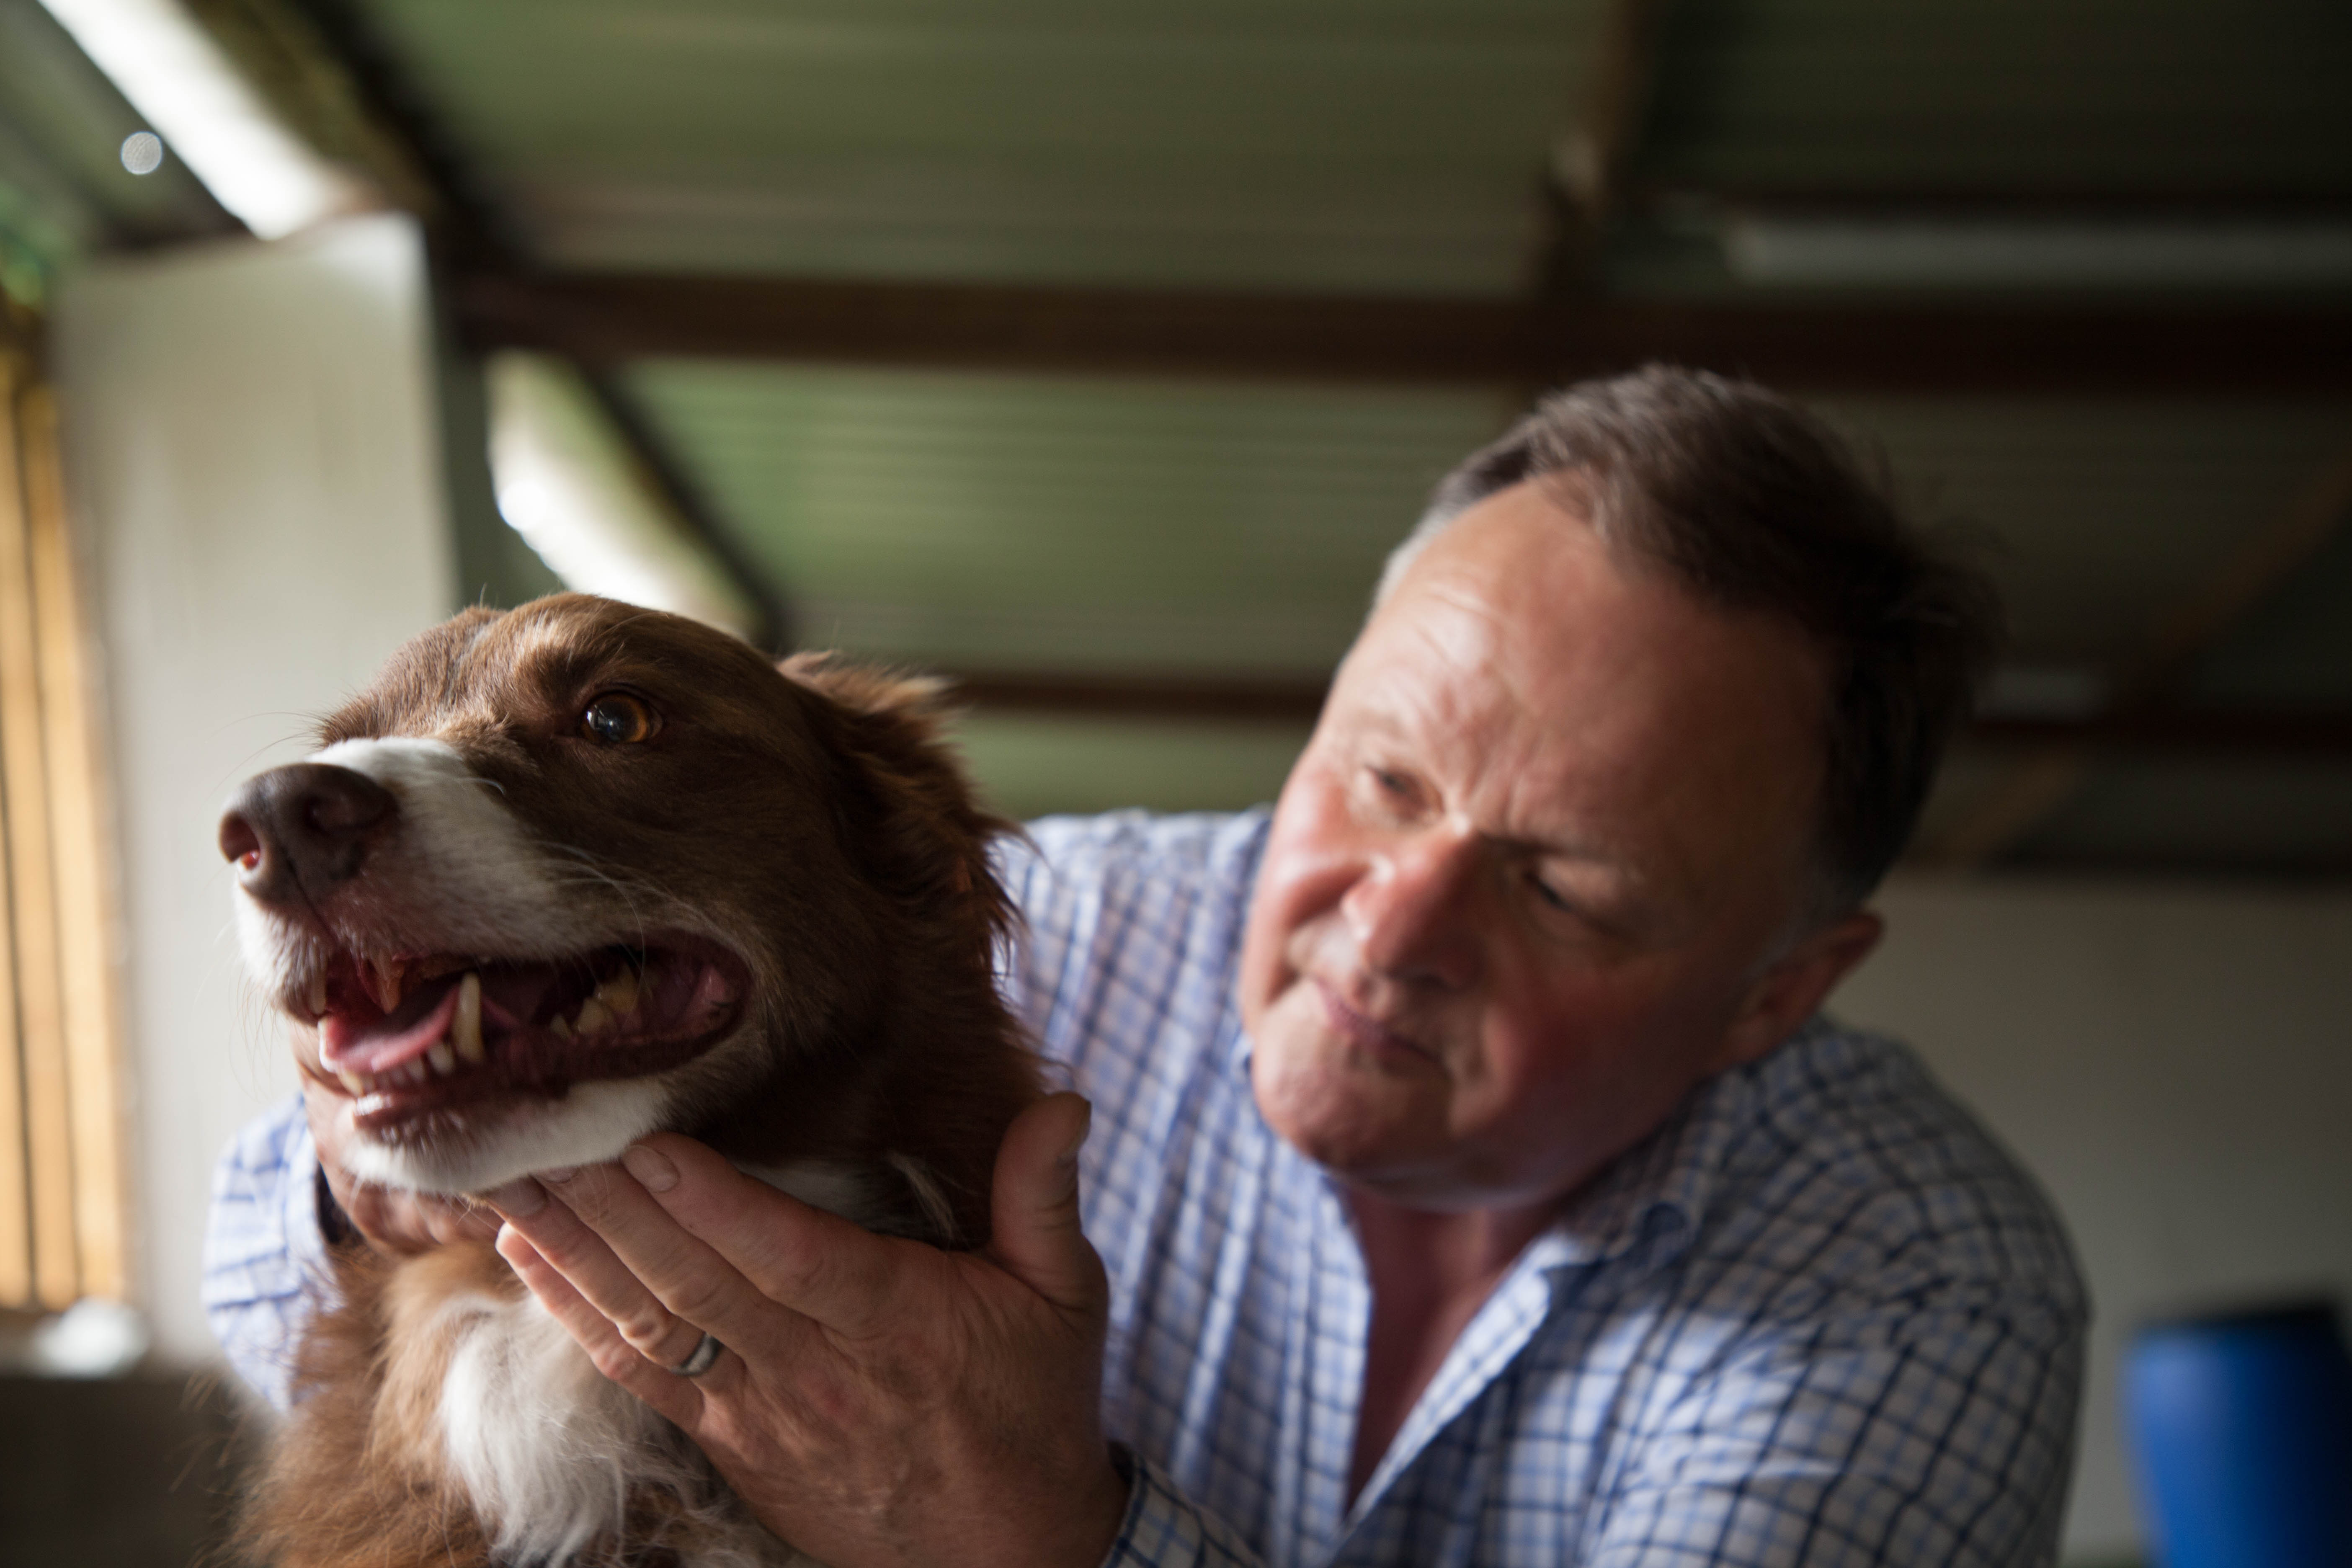 The Diploma in Animal Osteopathy (Canine Stream) is taught by Prof. Stuart McGregor, one of the word's foremost animal osteopaths.